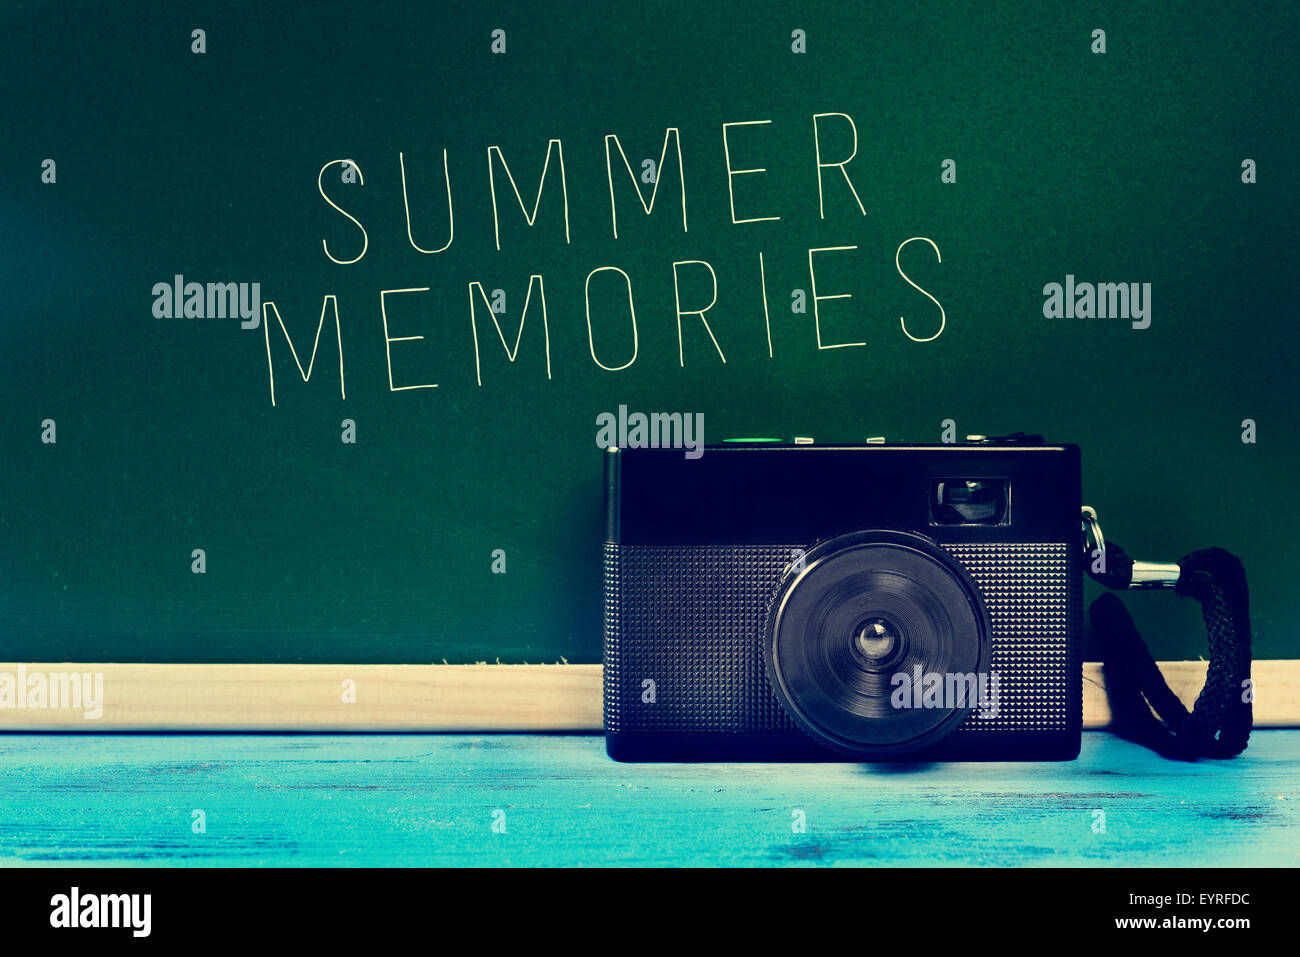 a retro camera on a rustic blue wooden surface and the text summer memories written on a green chalkboard, with - Stock Image